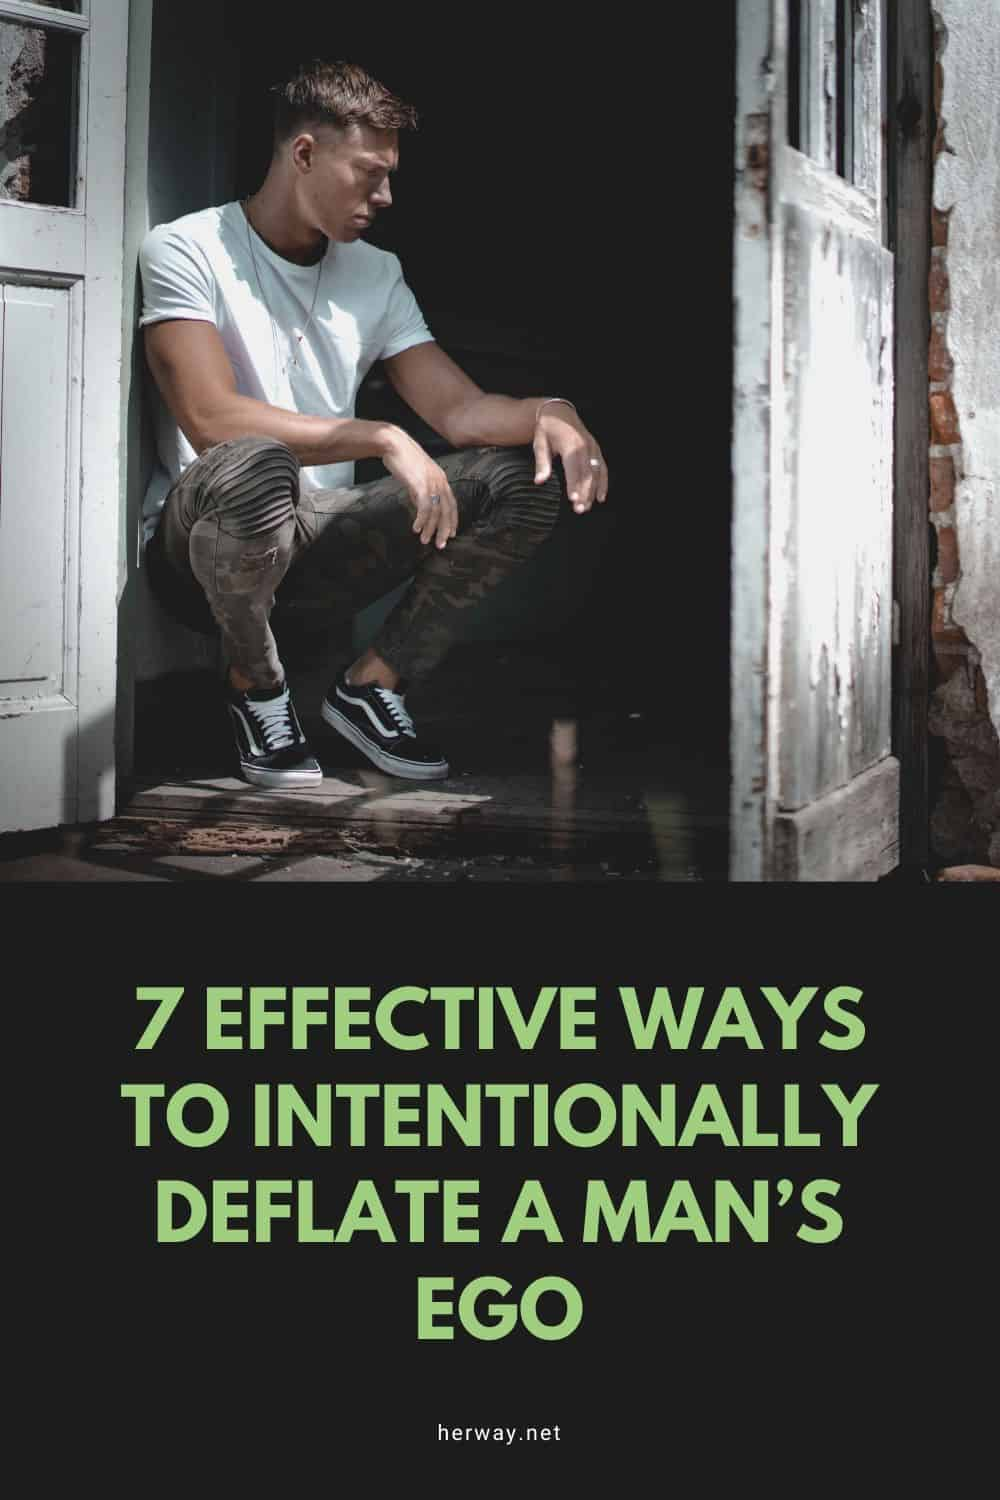 7 Effective Ways To Intentionally Deflate A Man's Ego